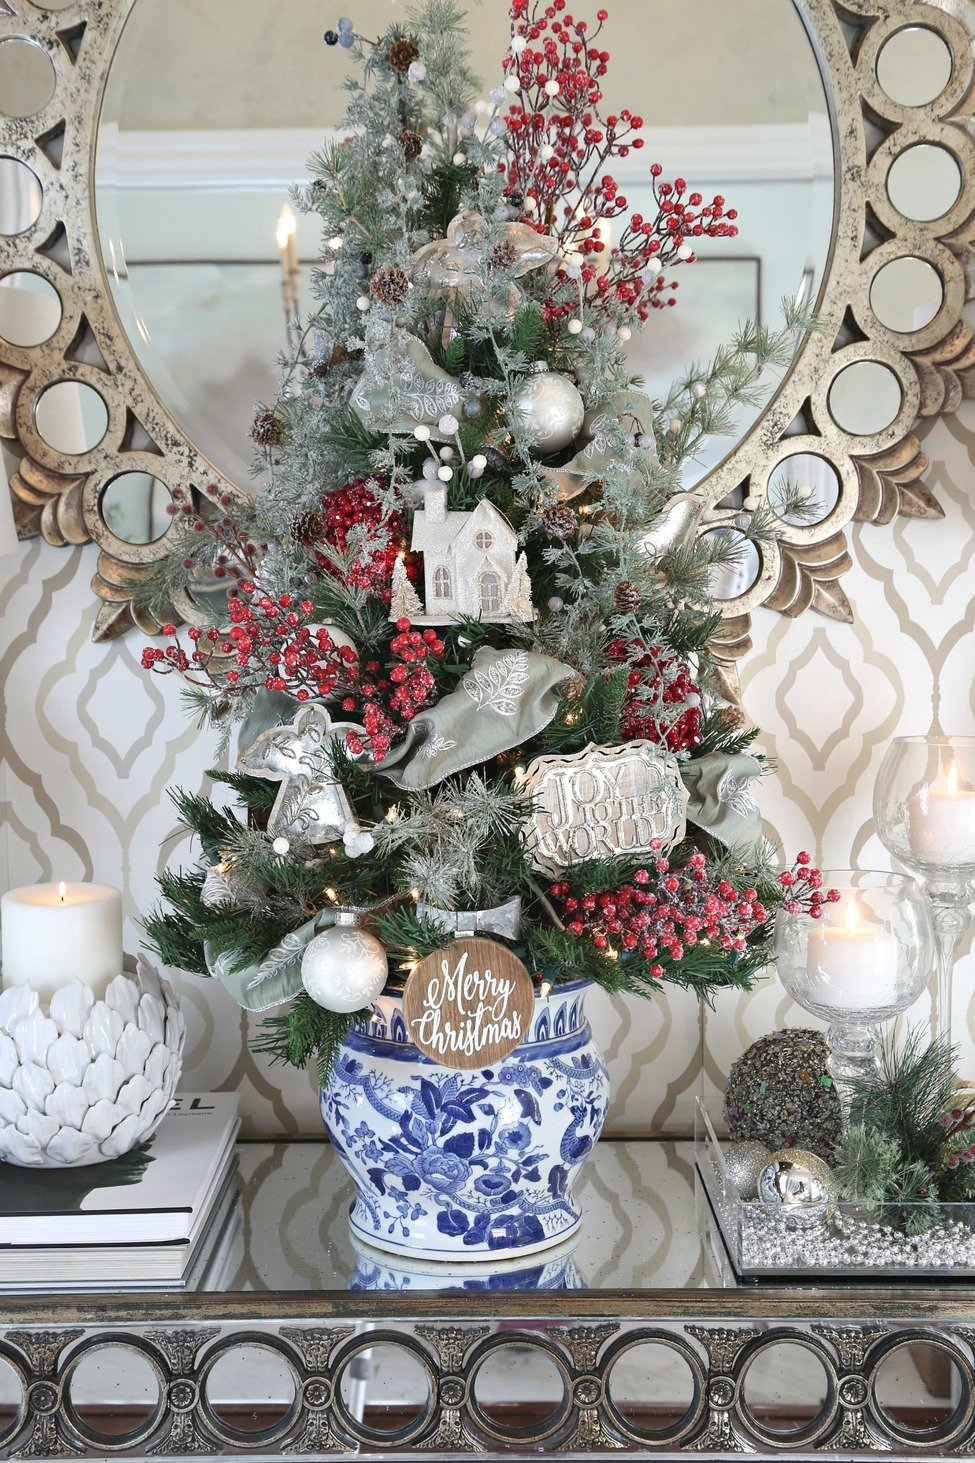 Tabletop Christmas Tree in Blue and White Garden Urn